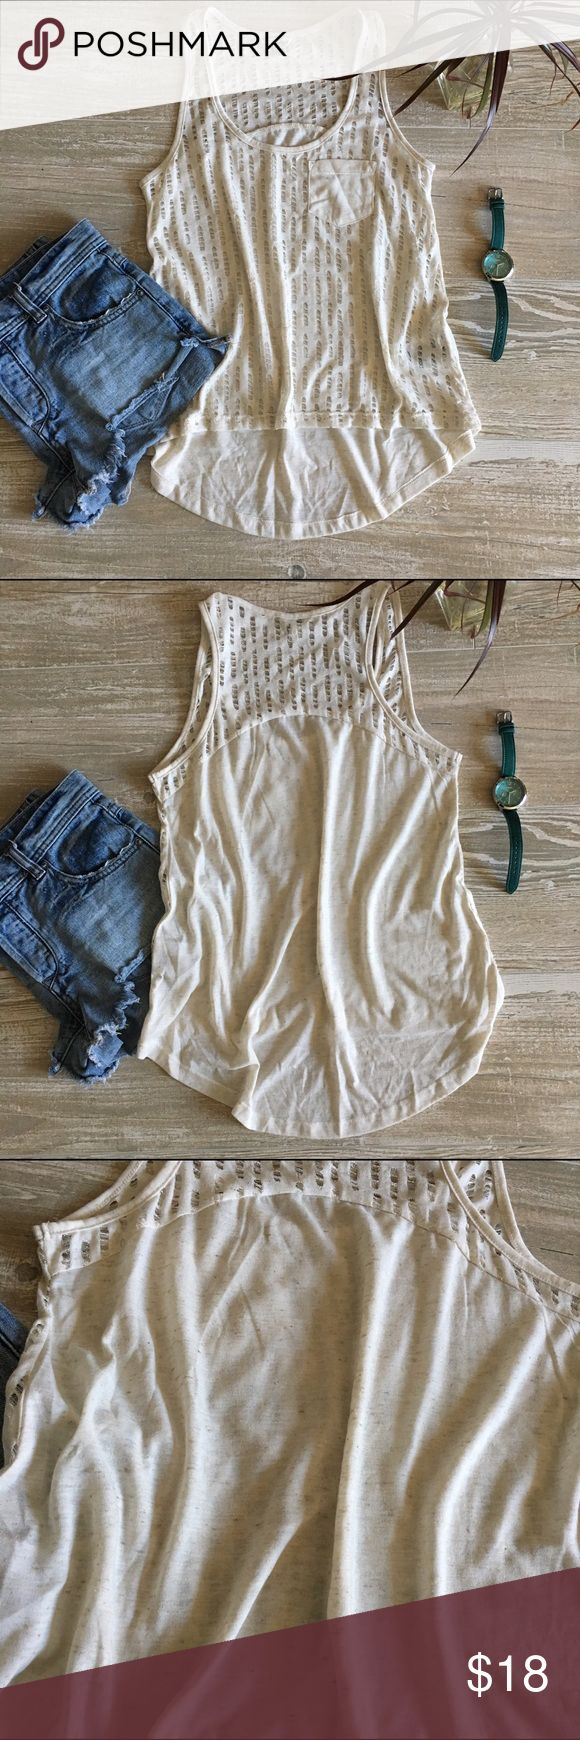 •Guess• Heathered Cream Tank NWOT. This tank is so fun, but I just haven't worn it yet! Layer with a bandeau in the warmer months and your good to go. Features a high low cut with feathered perforation. Back is solid. Size XS. Guess Tops Tank Tops